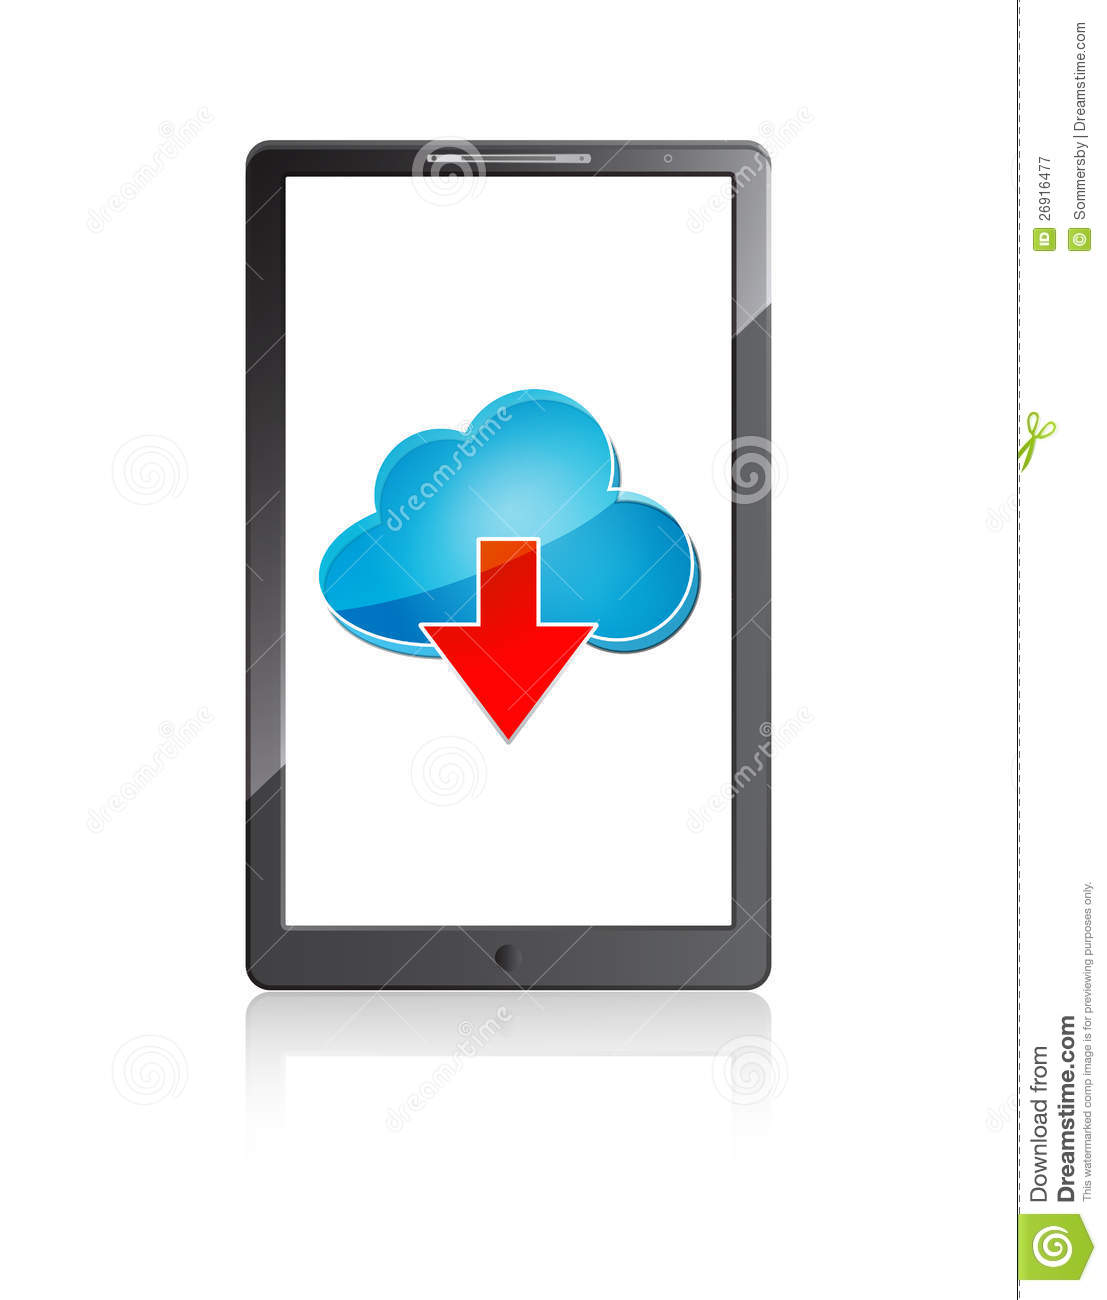 c1415fdb5 Mobile phone with blue cloud computing icon and red arrow on a white  background. More similar stock illustrations